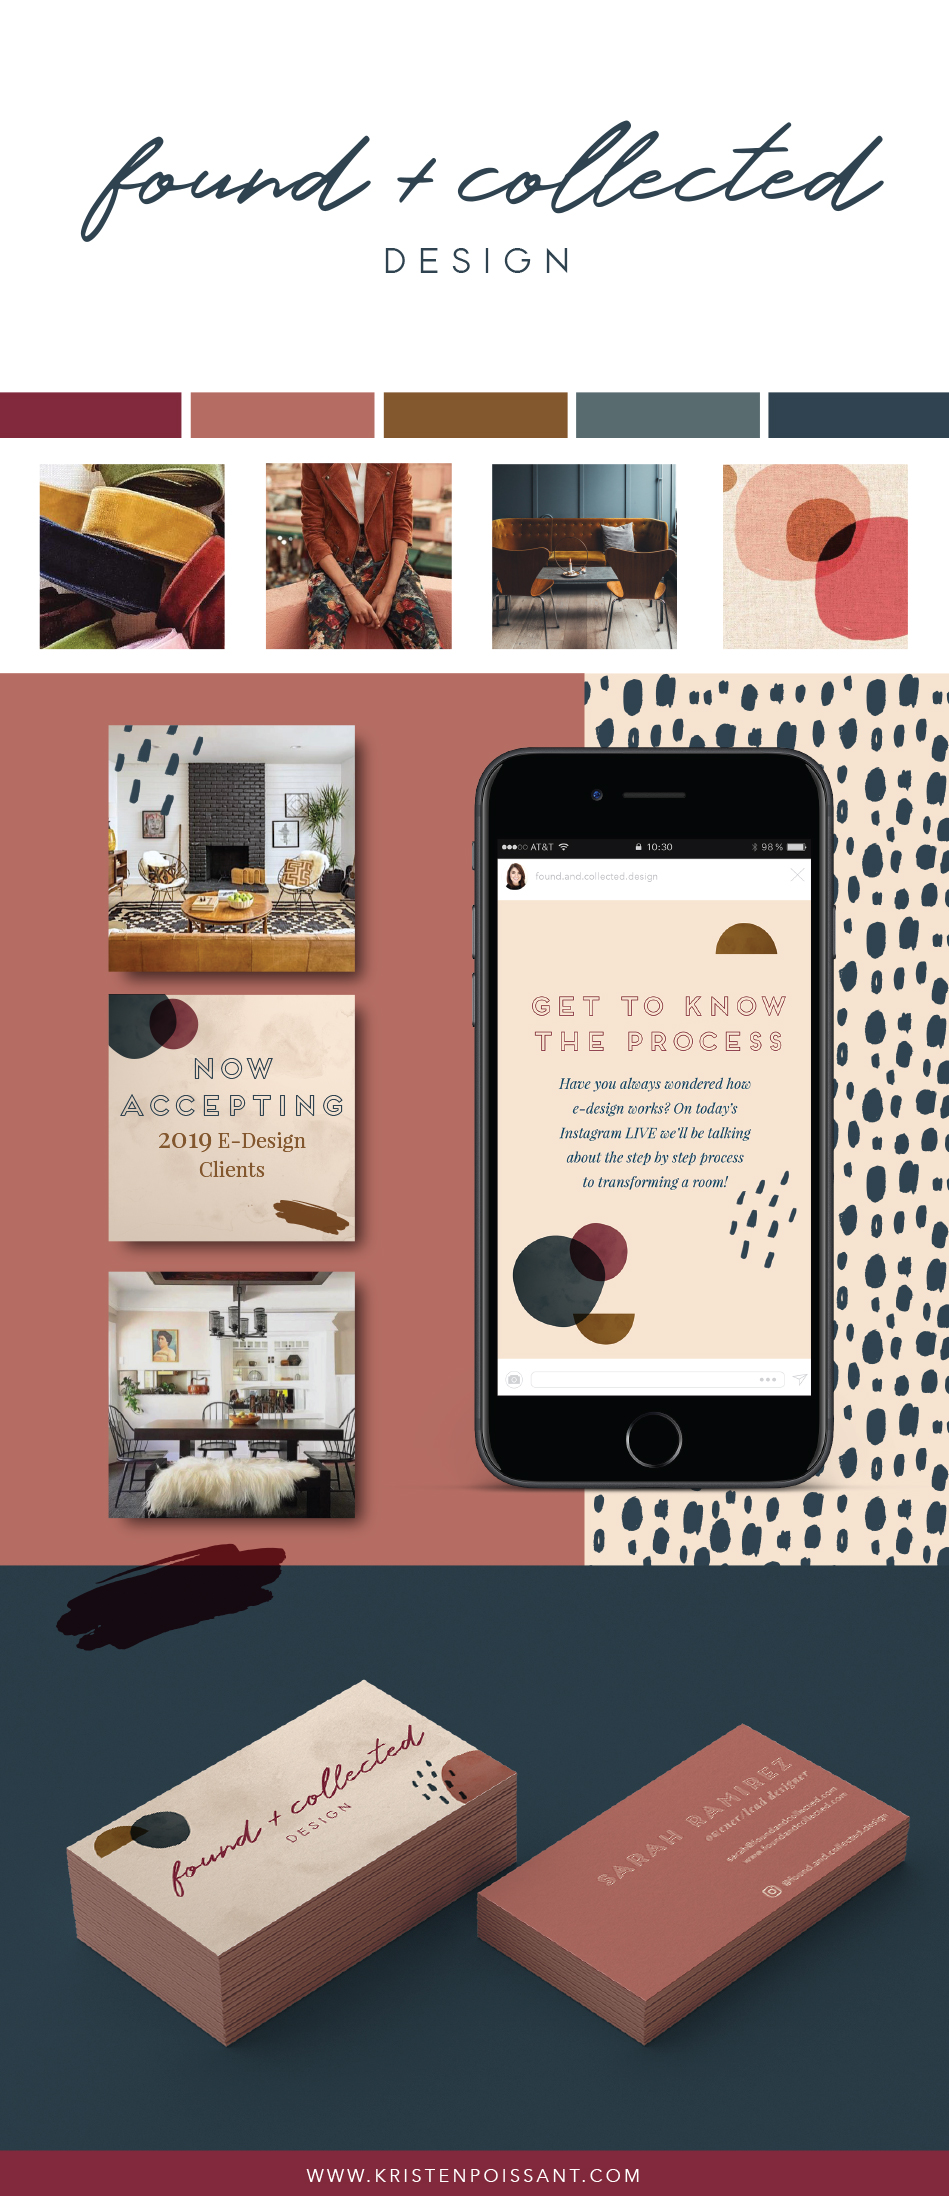 California-based-interior-edesigner-branding-by-kristen-poissant.jpg